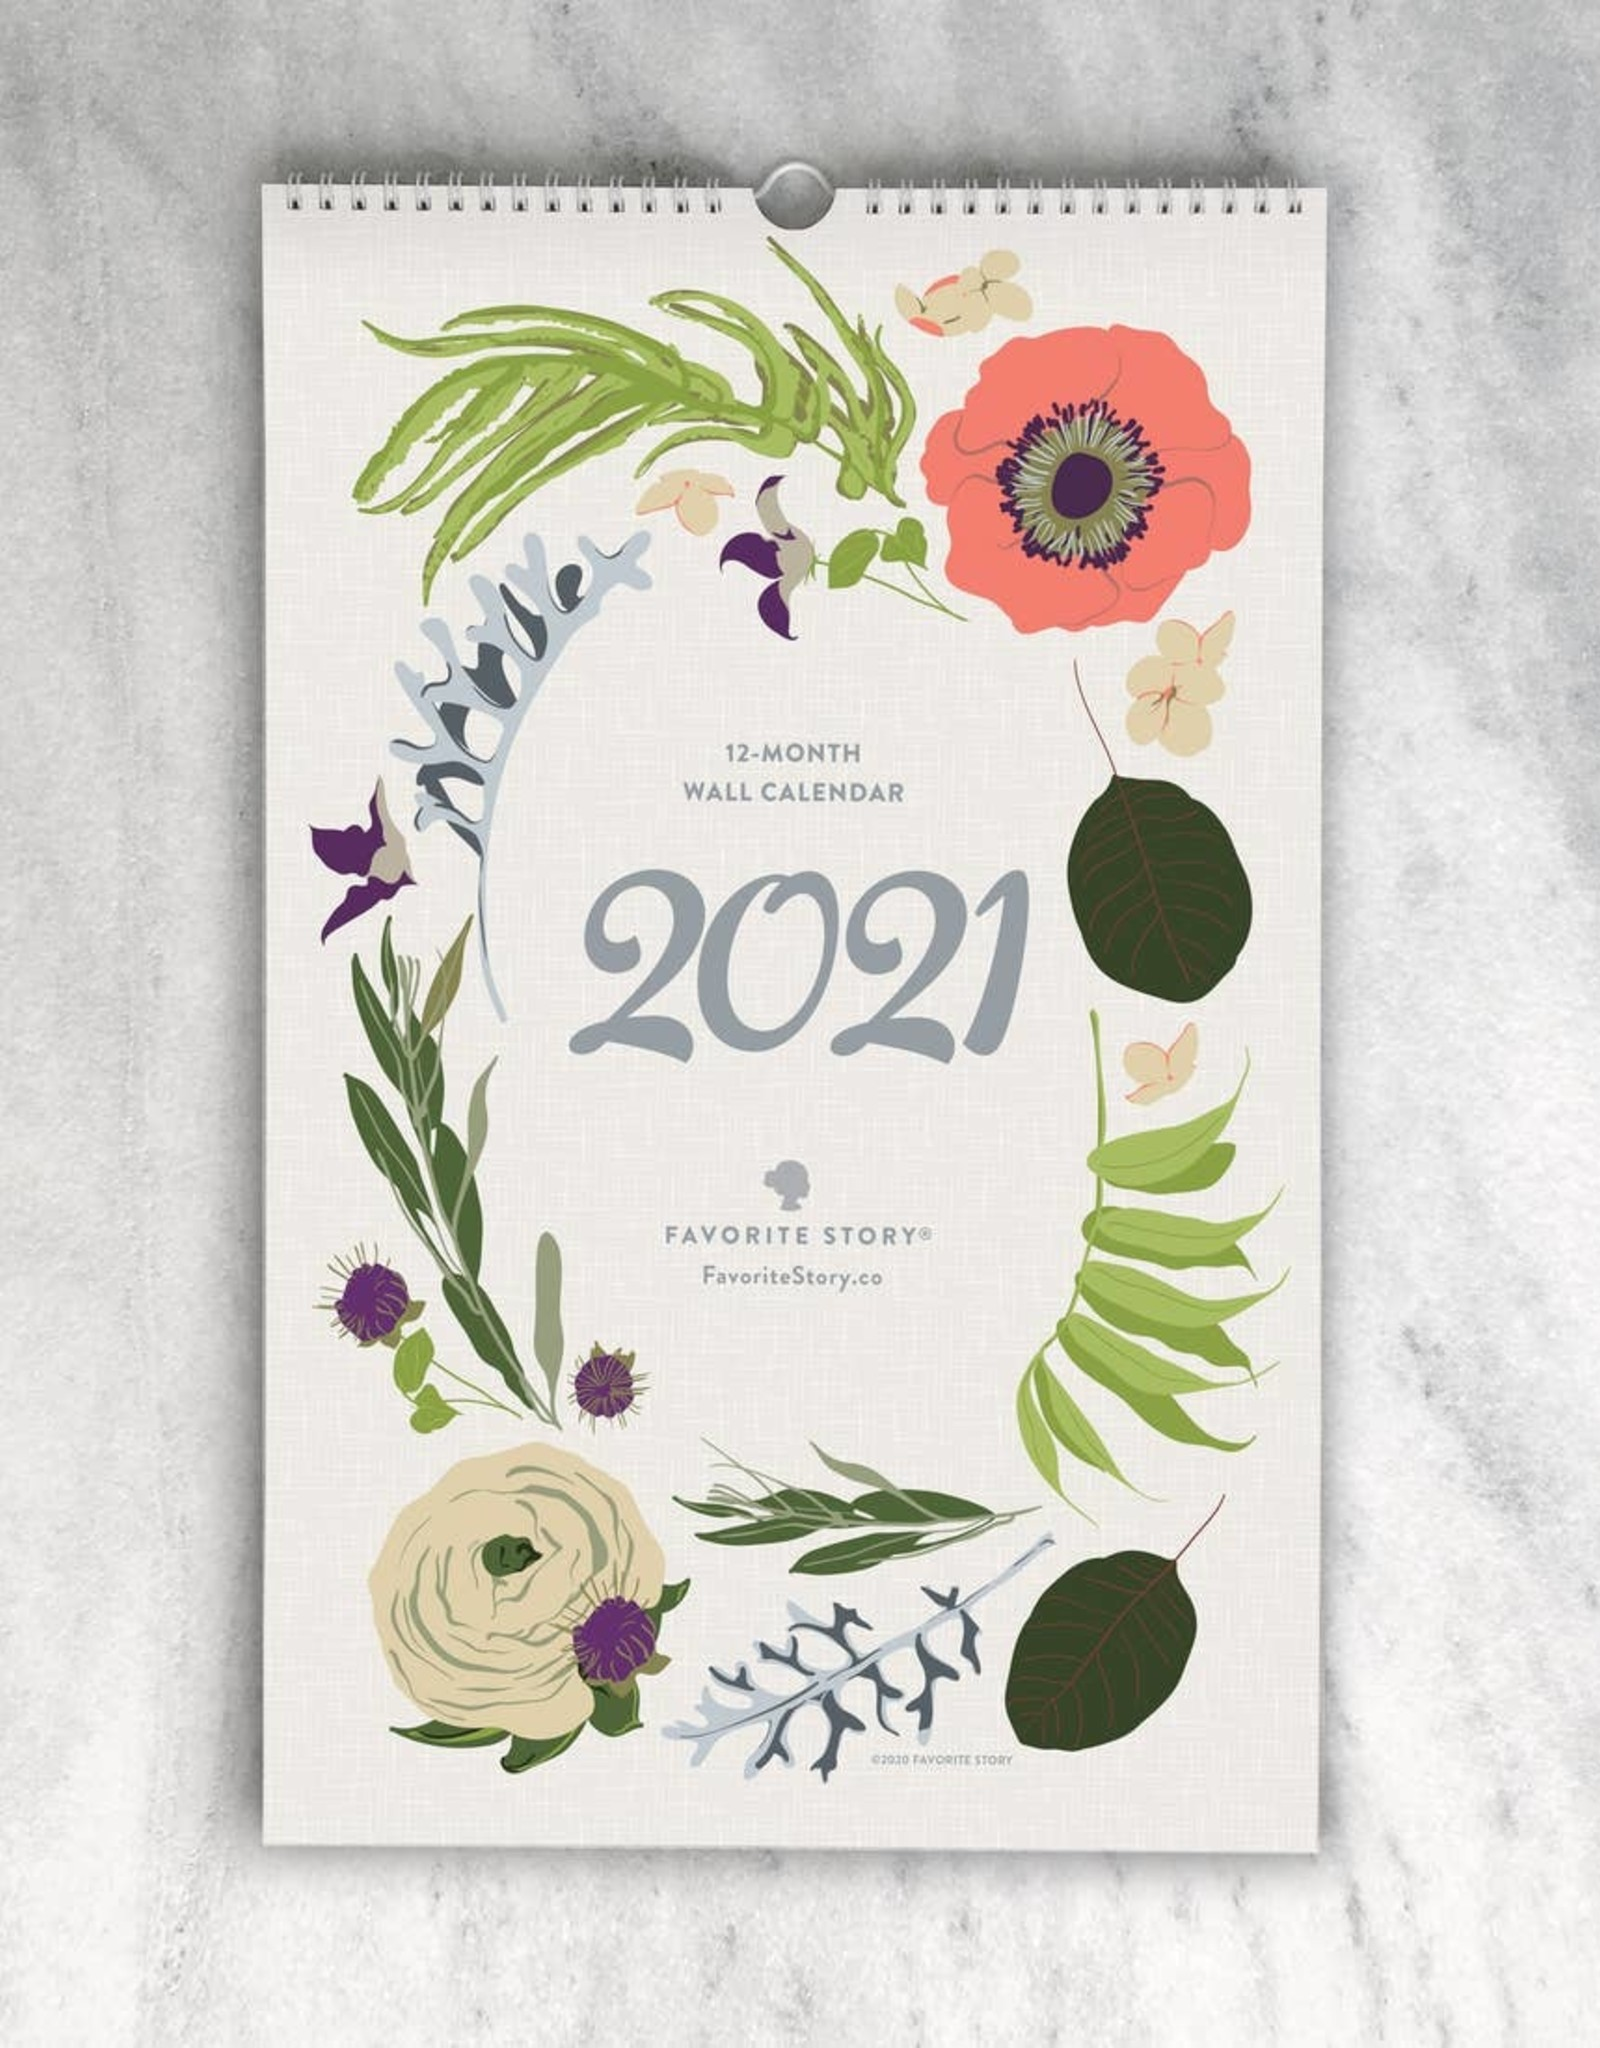 Favorite Story Favorite Story | 2021 Wildflower Monthly Wall Calendar